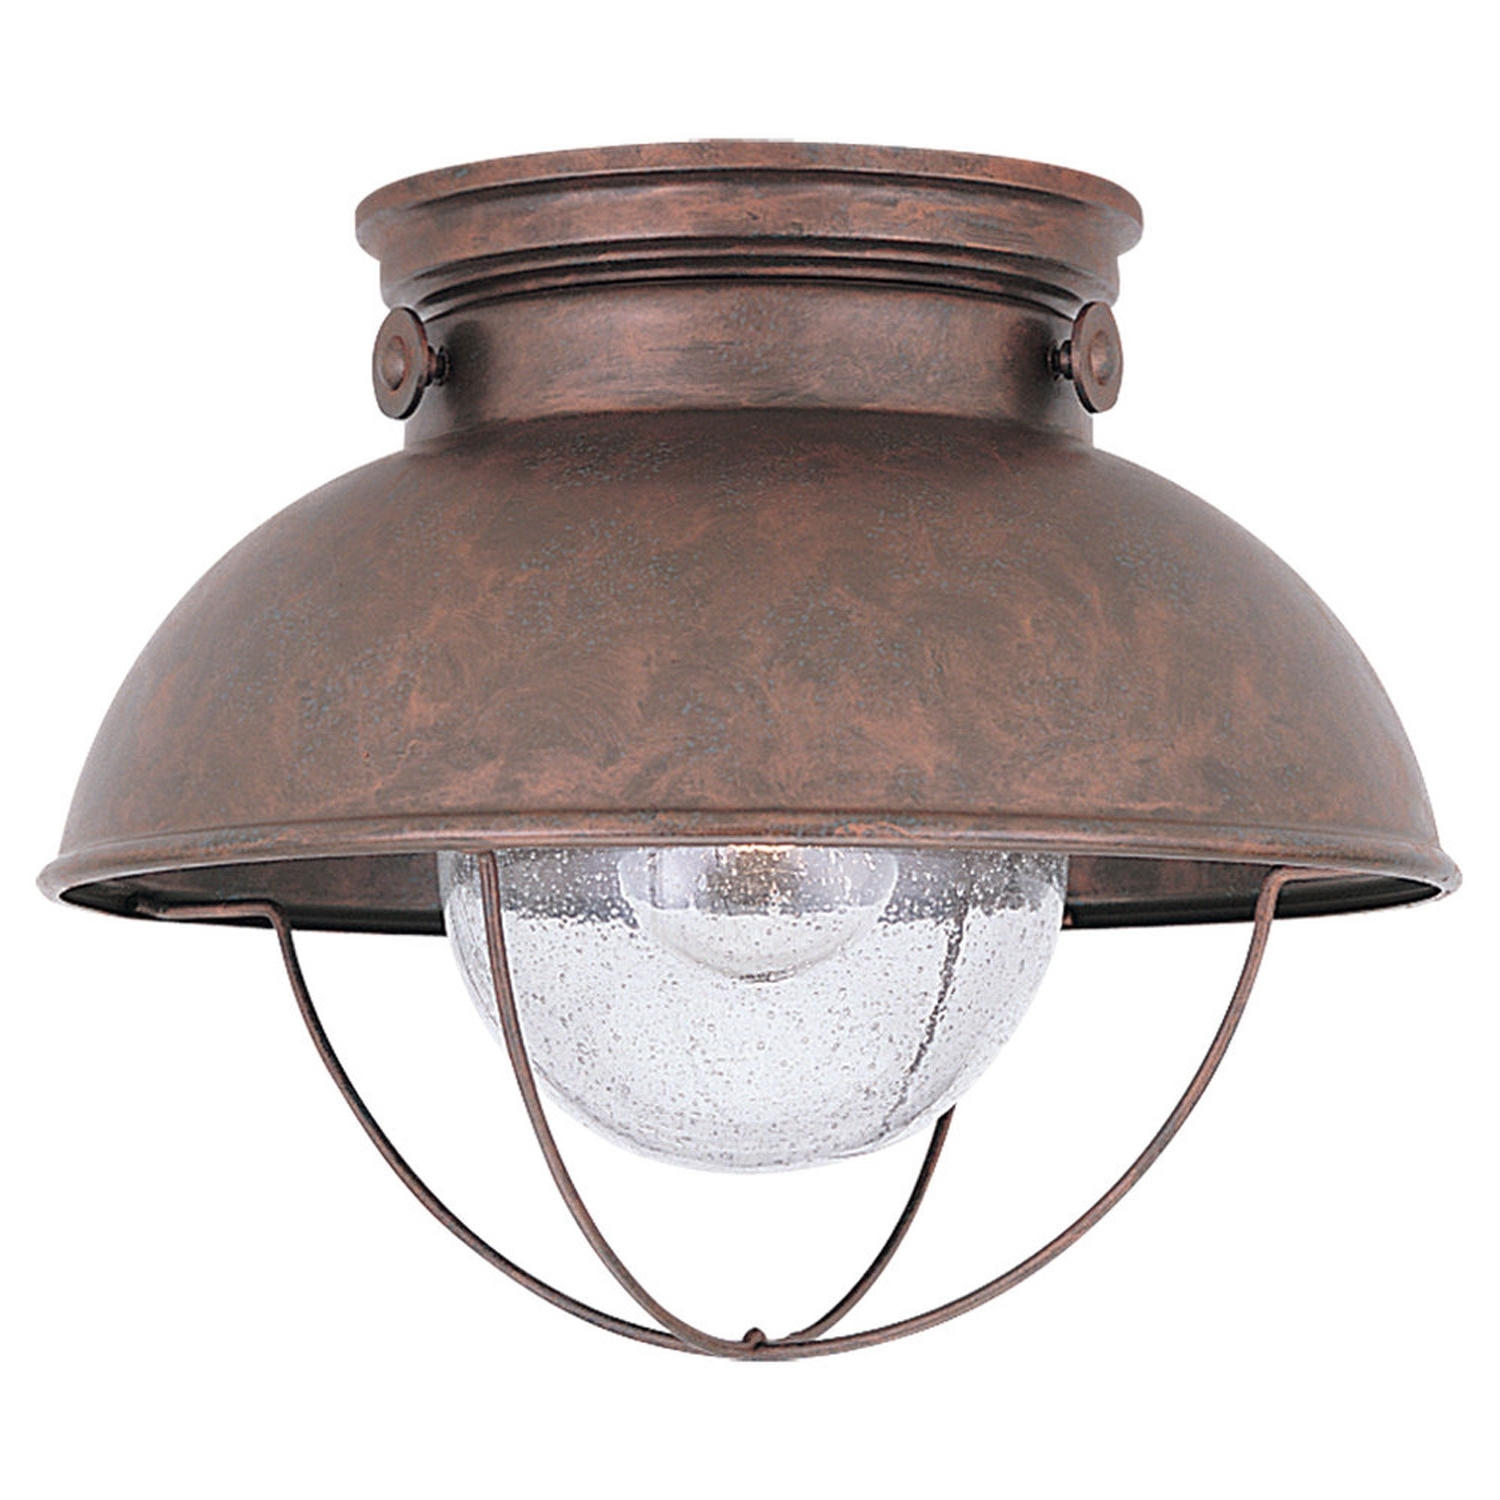 Outdoor Lighting On Sale (View 8 of 20)